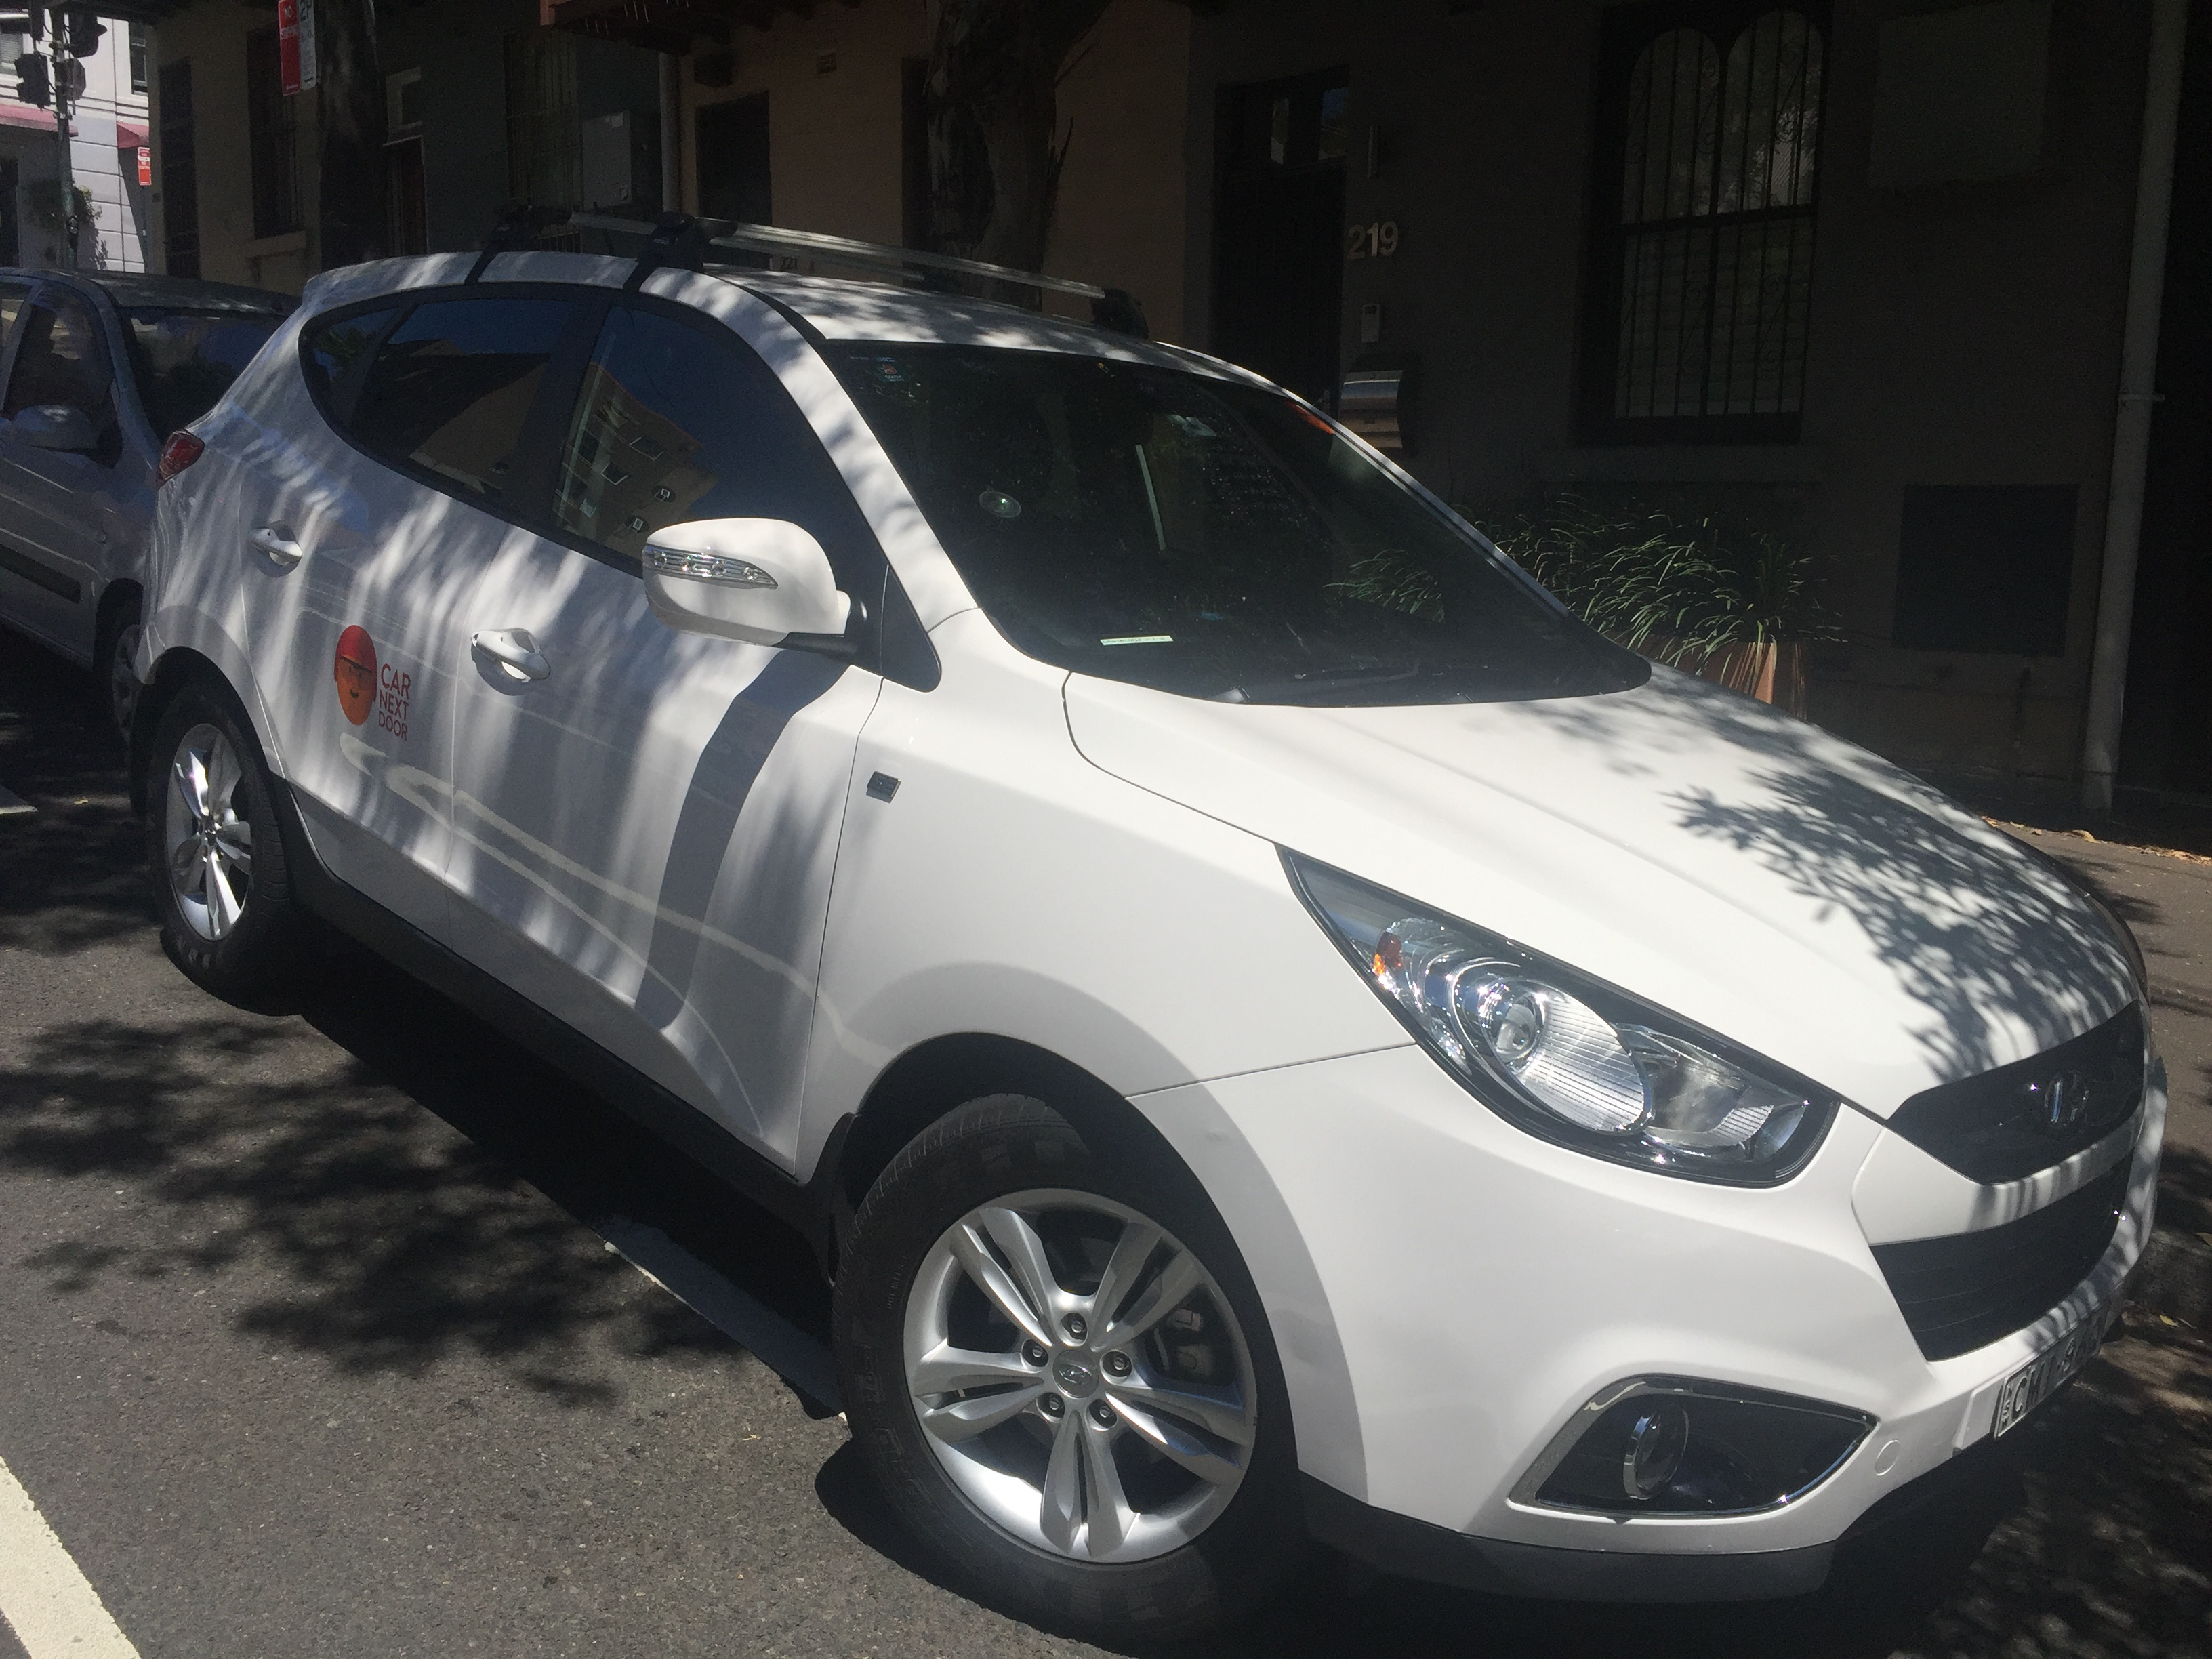 Picture of Gregory's 2013 Hyundai ix35 special edition